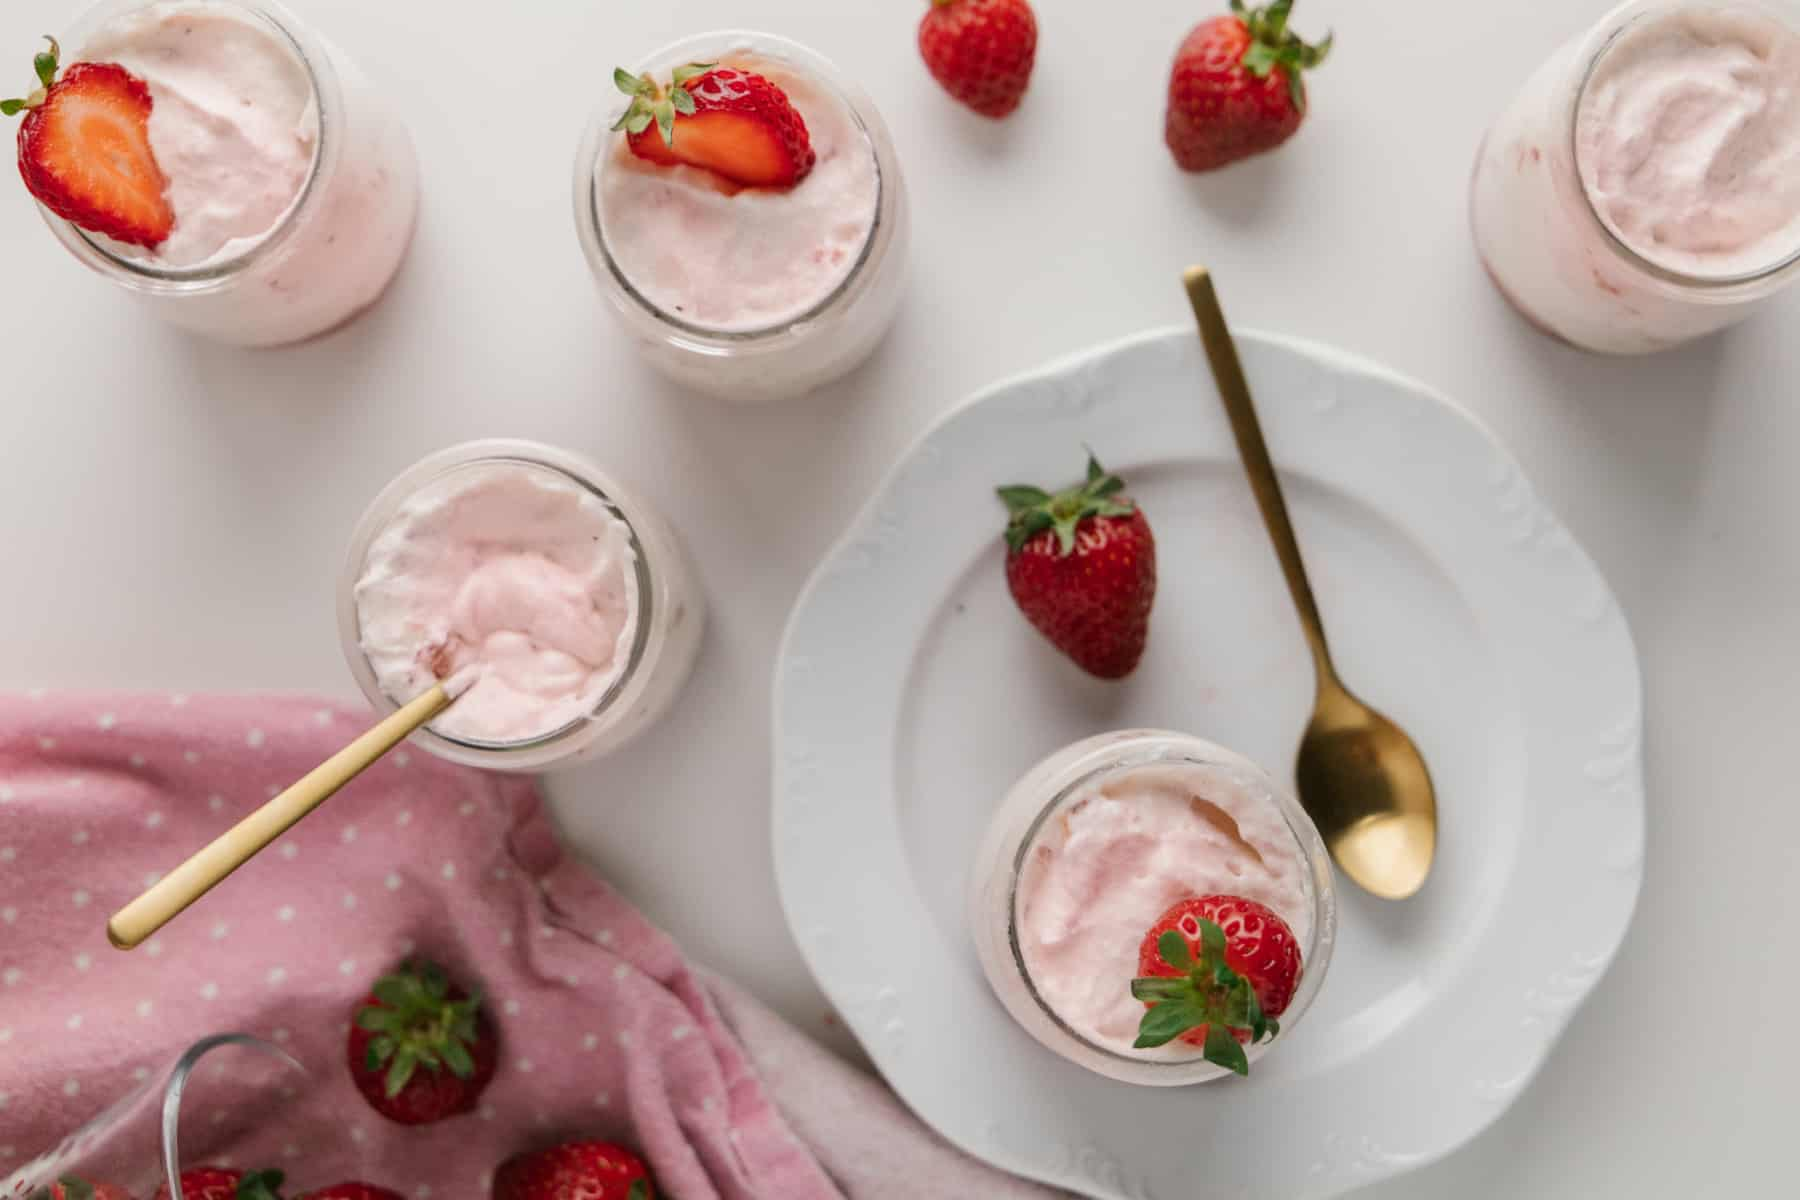 Overhead shot of jars of strawberry mousse